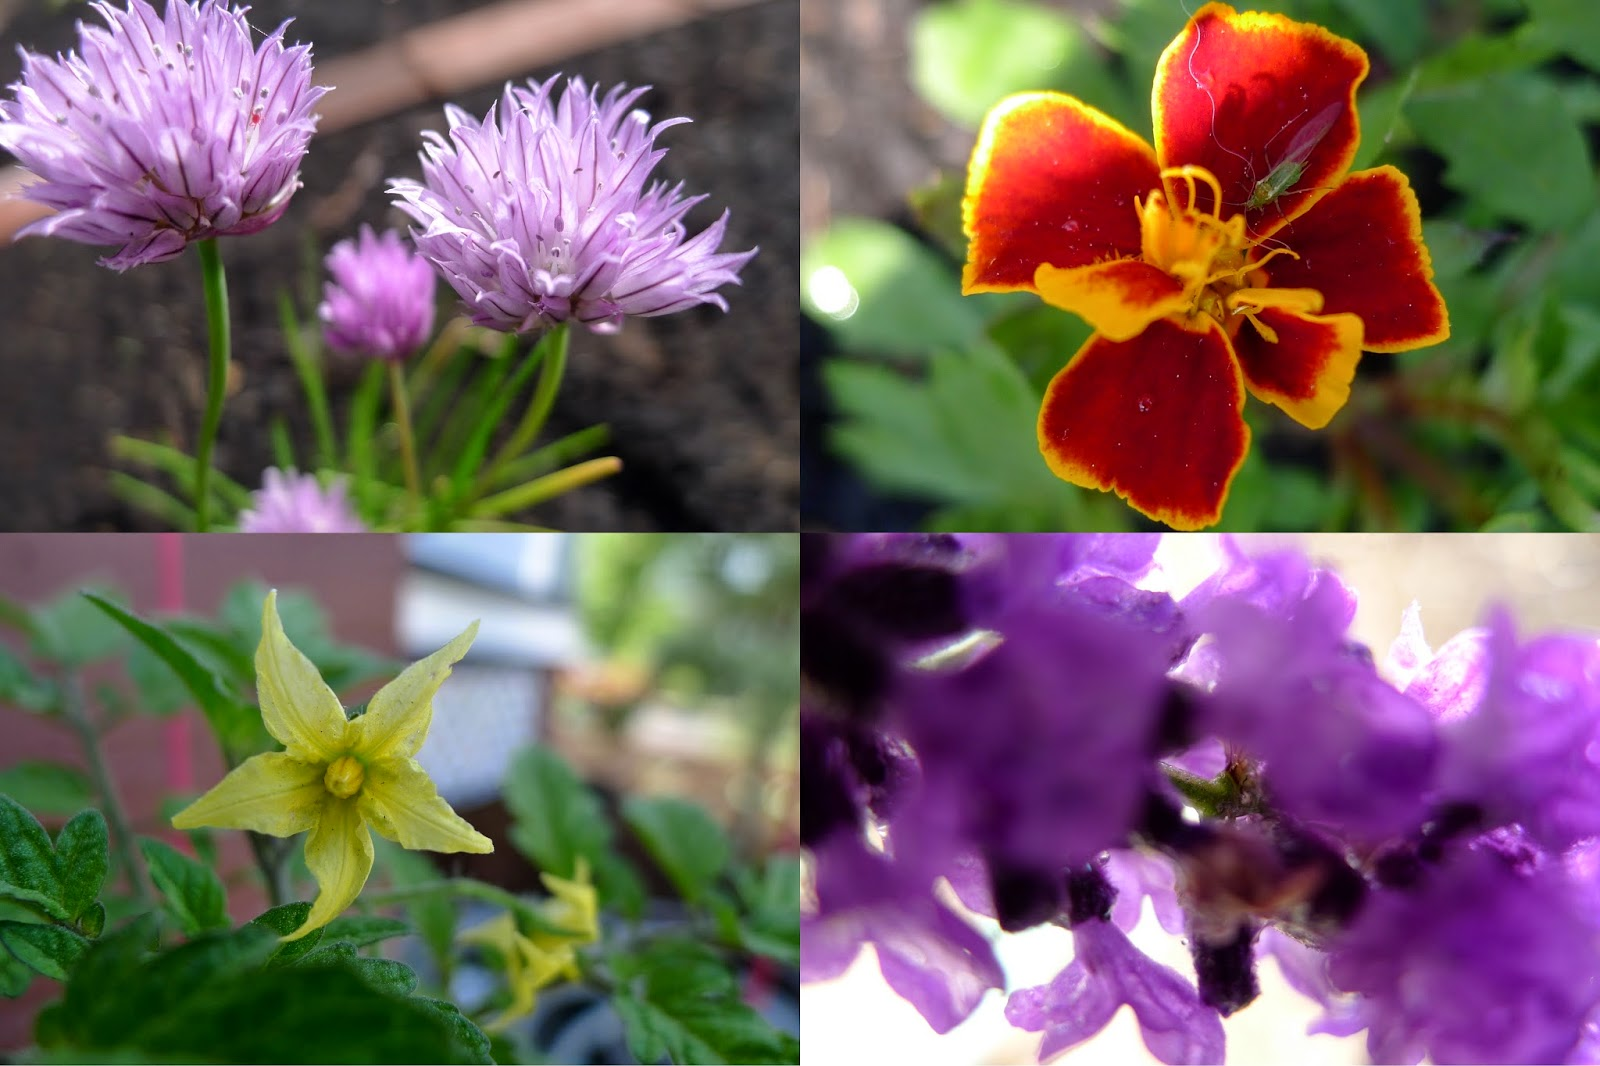 Flowers in the vegetable garden, urban farming, edible flowers, roma tomatoes, chives, marigolds, lavender